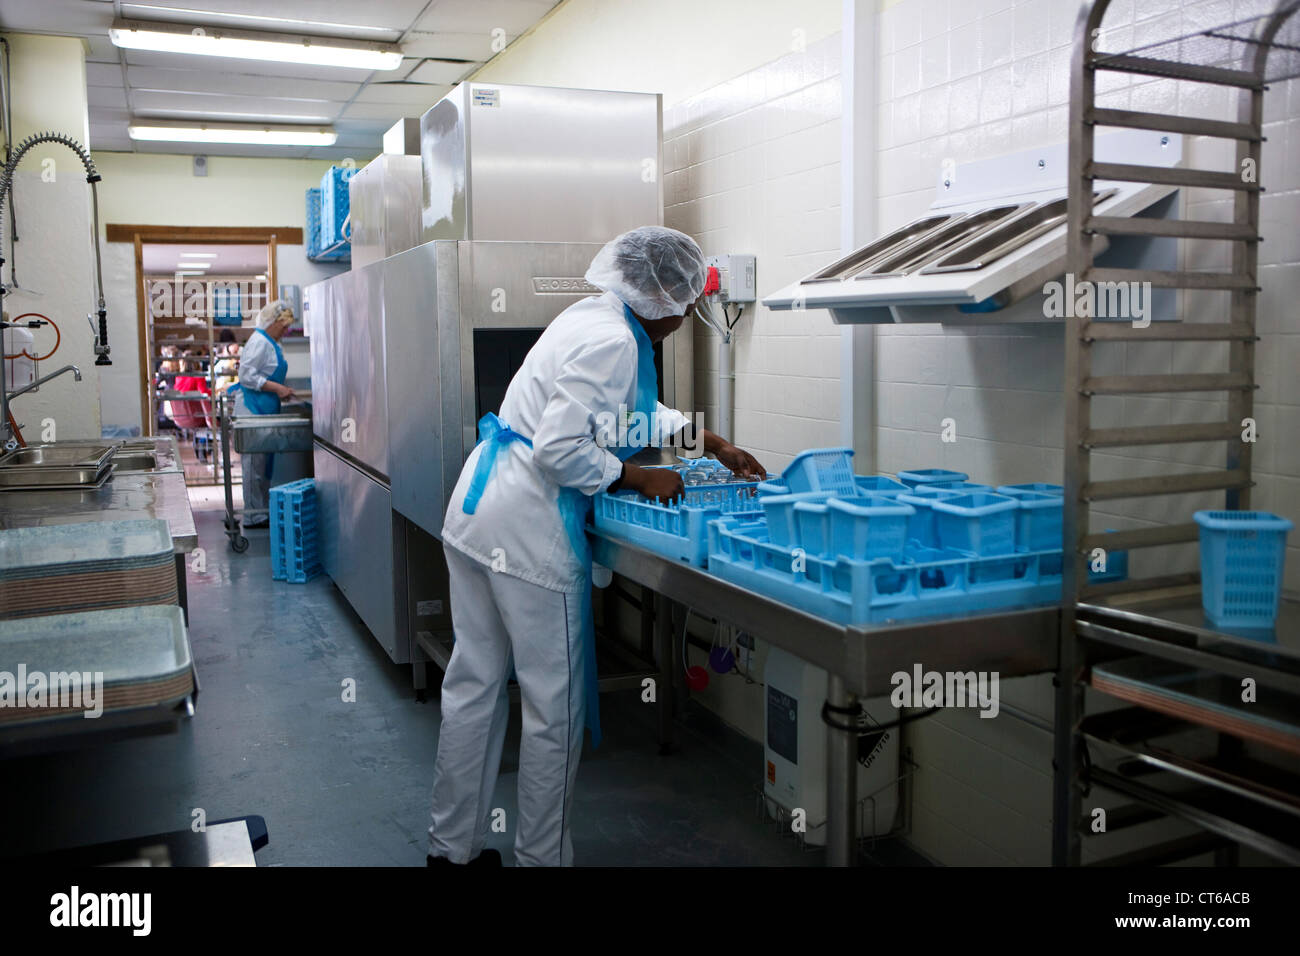 Kitchen Staff Canteen Stock Photos & Kitchen Staff Canteen Stock ...